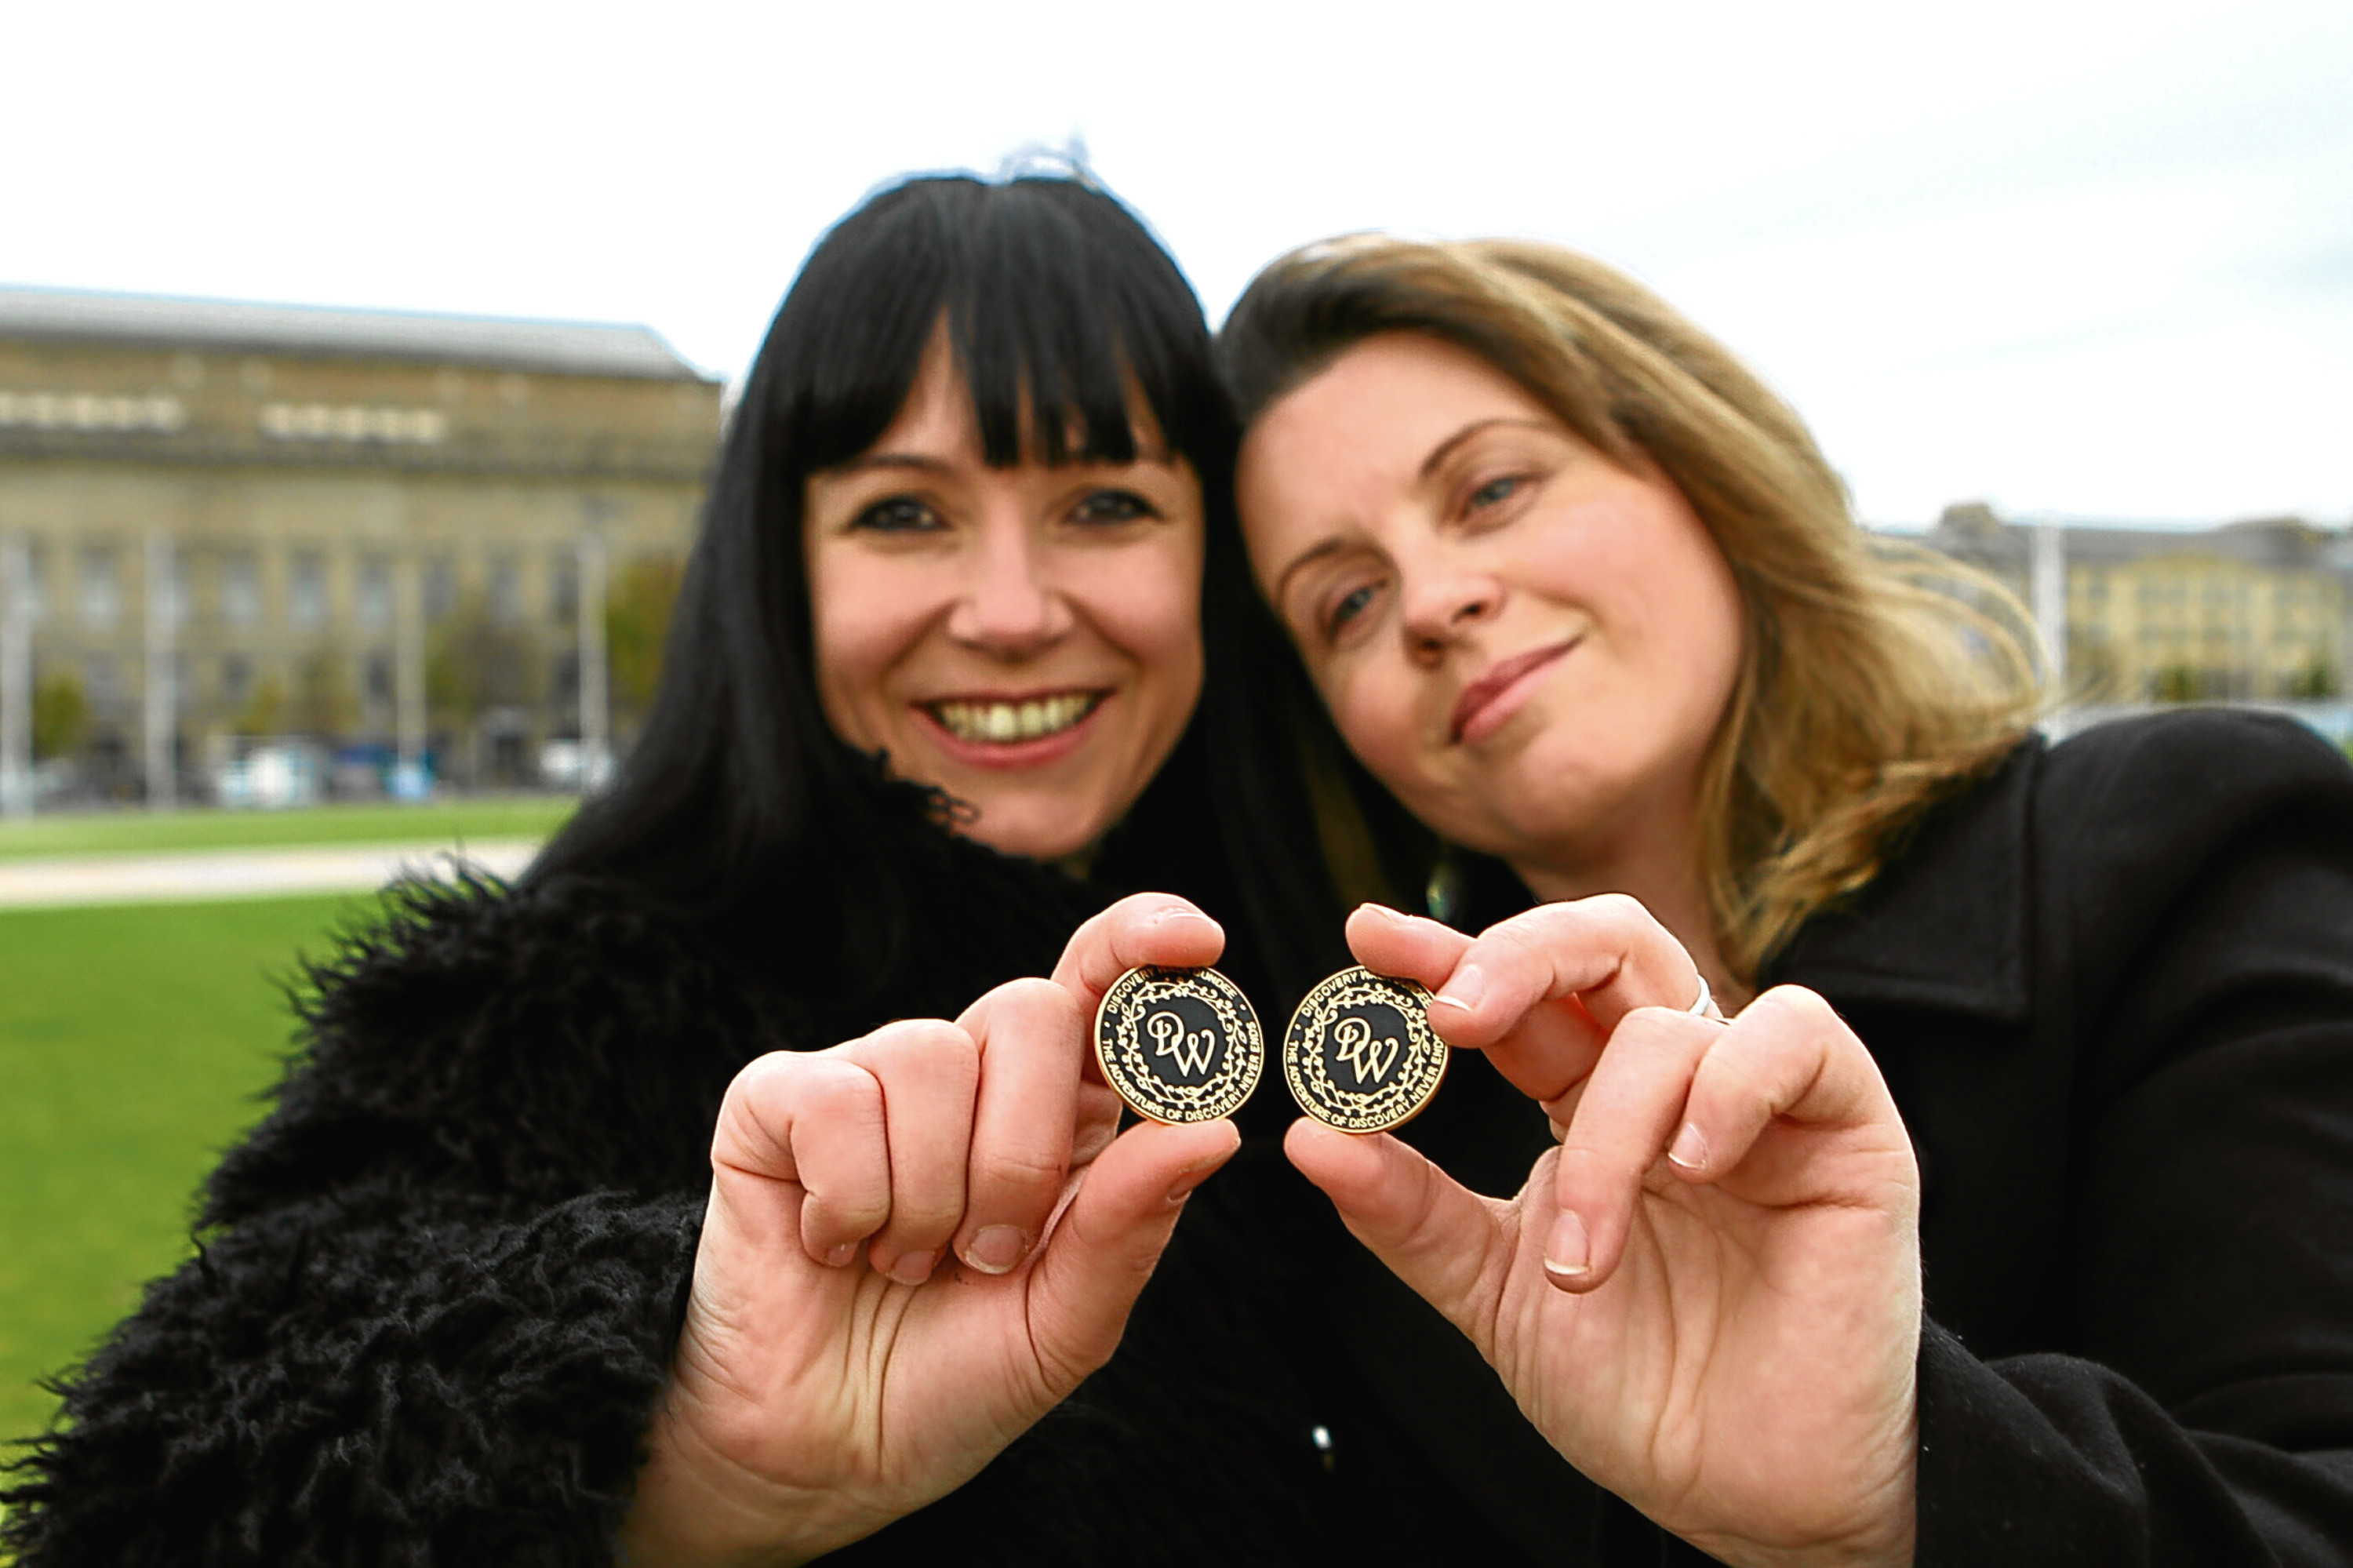 Artist Suzanne Scott, left, designer of the Discovery Walk plaques and Kelly Marr, project originator and chair of the Discovery Walk Steering Group, at Mary Slessor Gardens, with two of the badges that will be sold to crowdfund the next phase of Discovery Walk